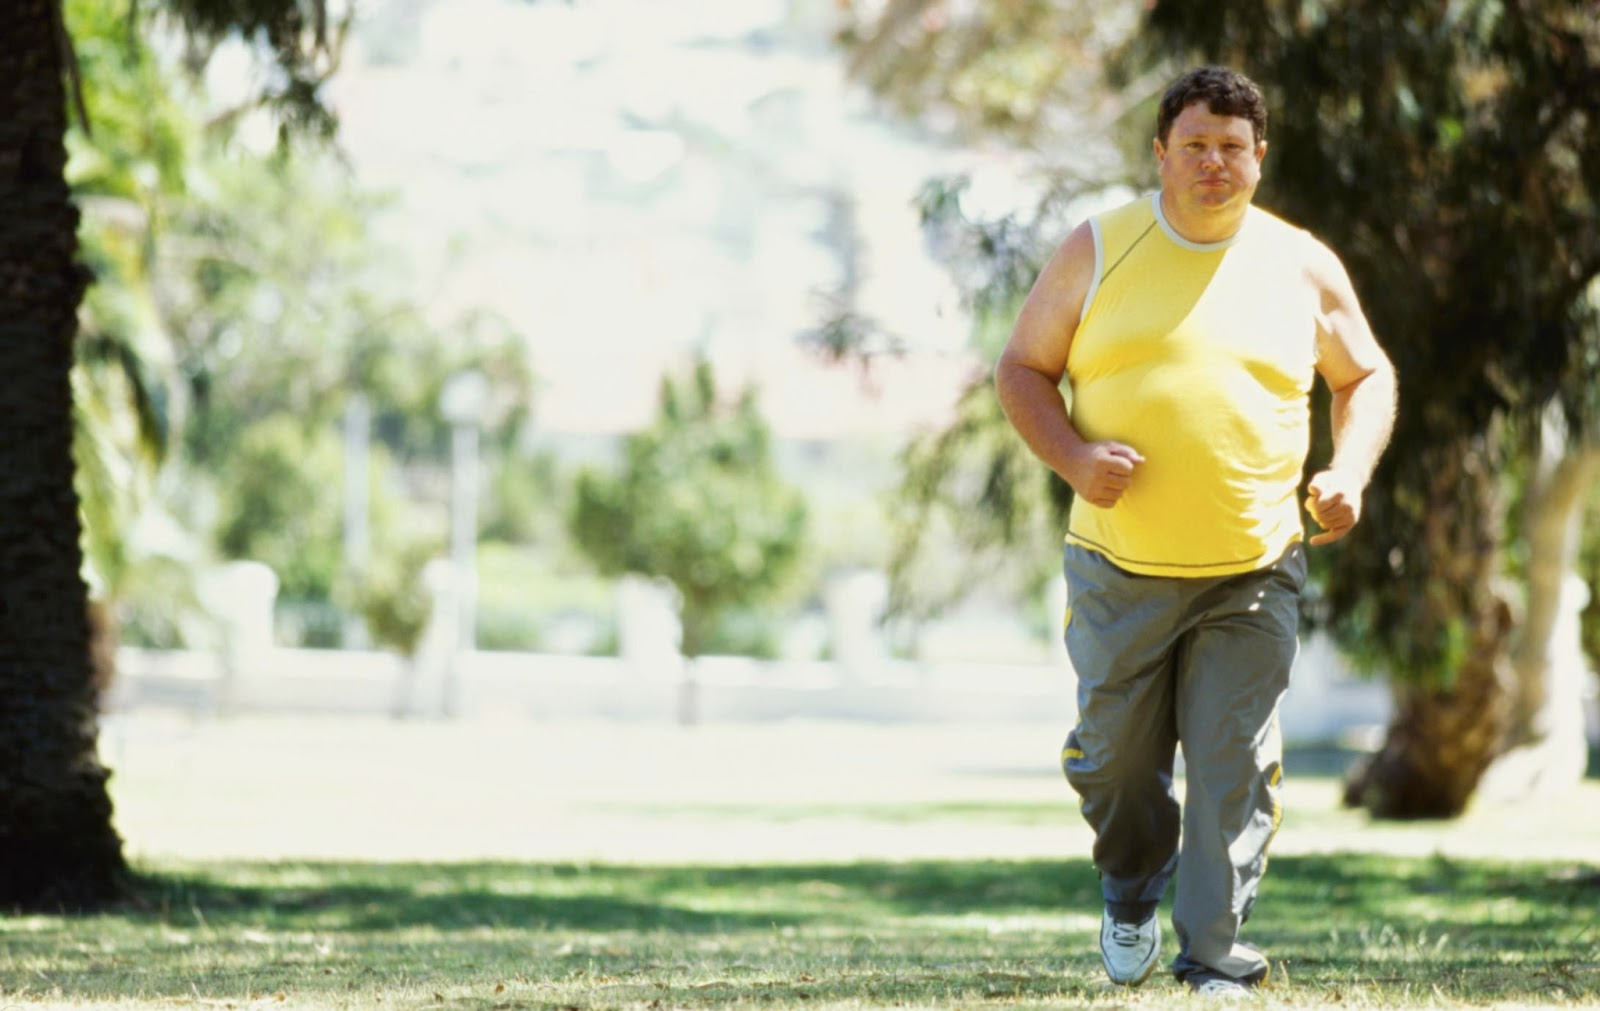 Even a Little Exercise Fights Obesity